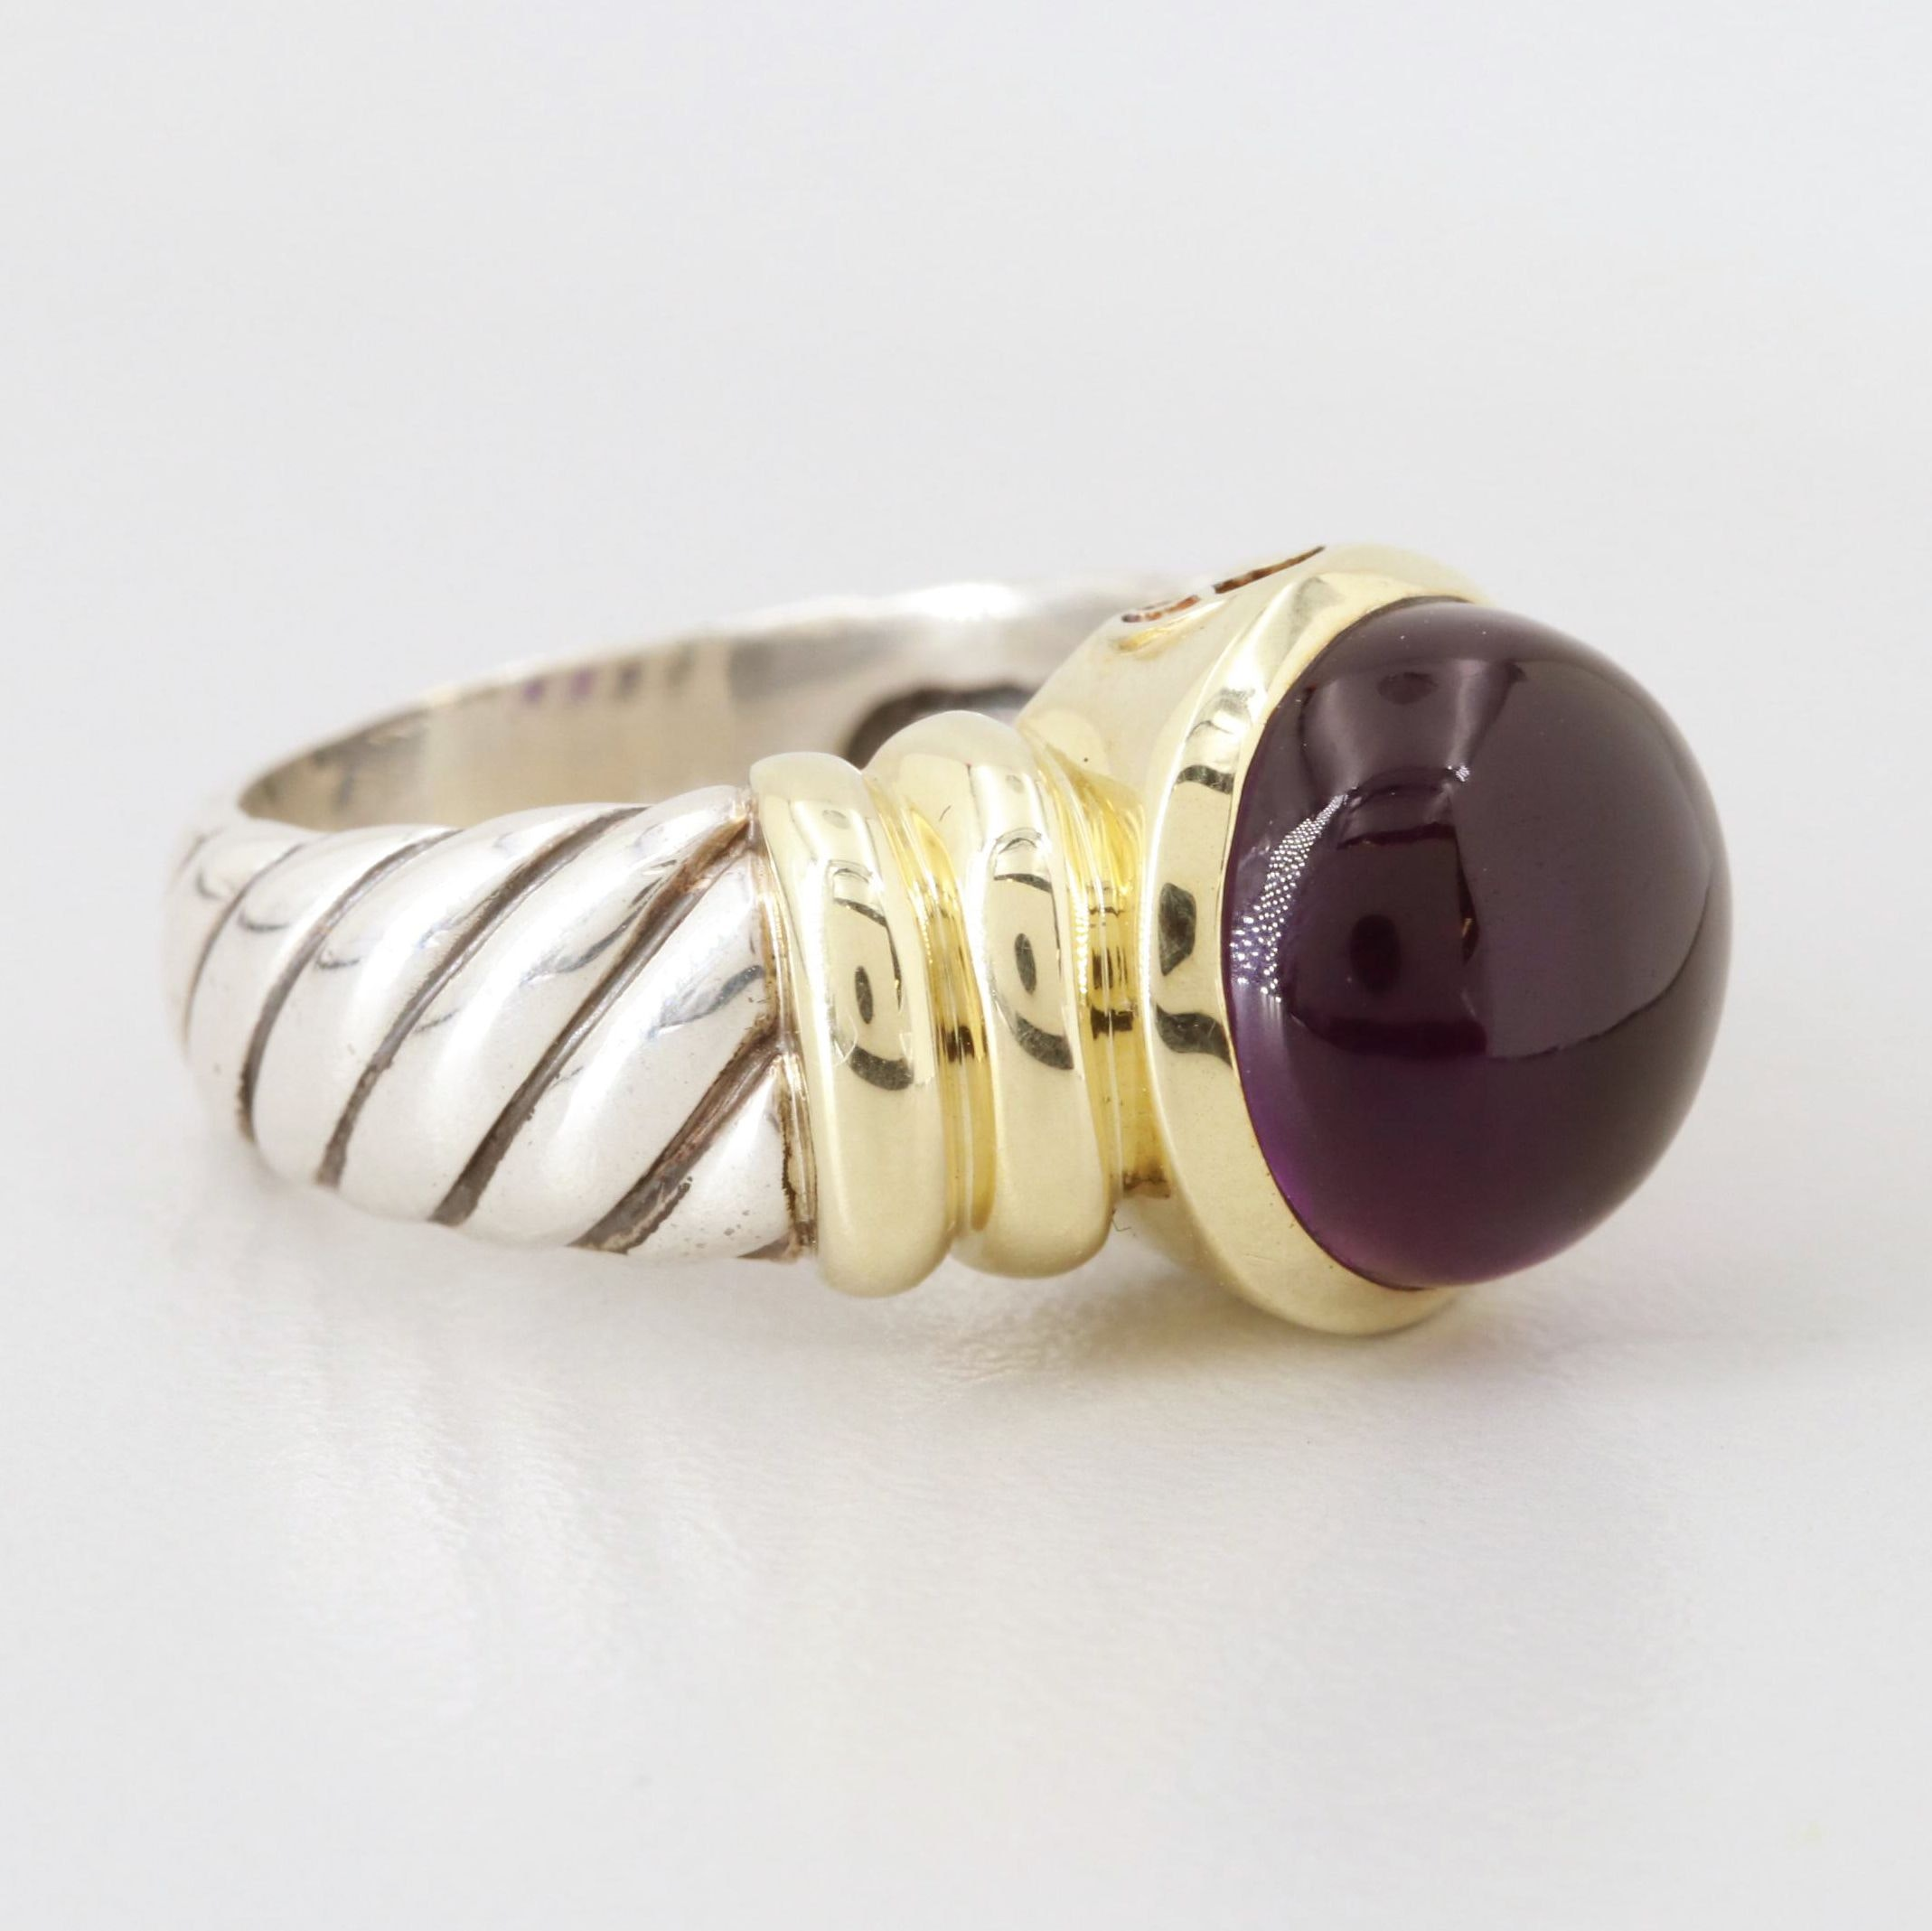 David Yurman Sterling Silver Amethyst Ring with 14K Yellow Gold Accent